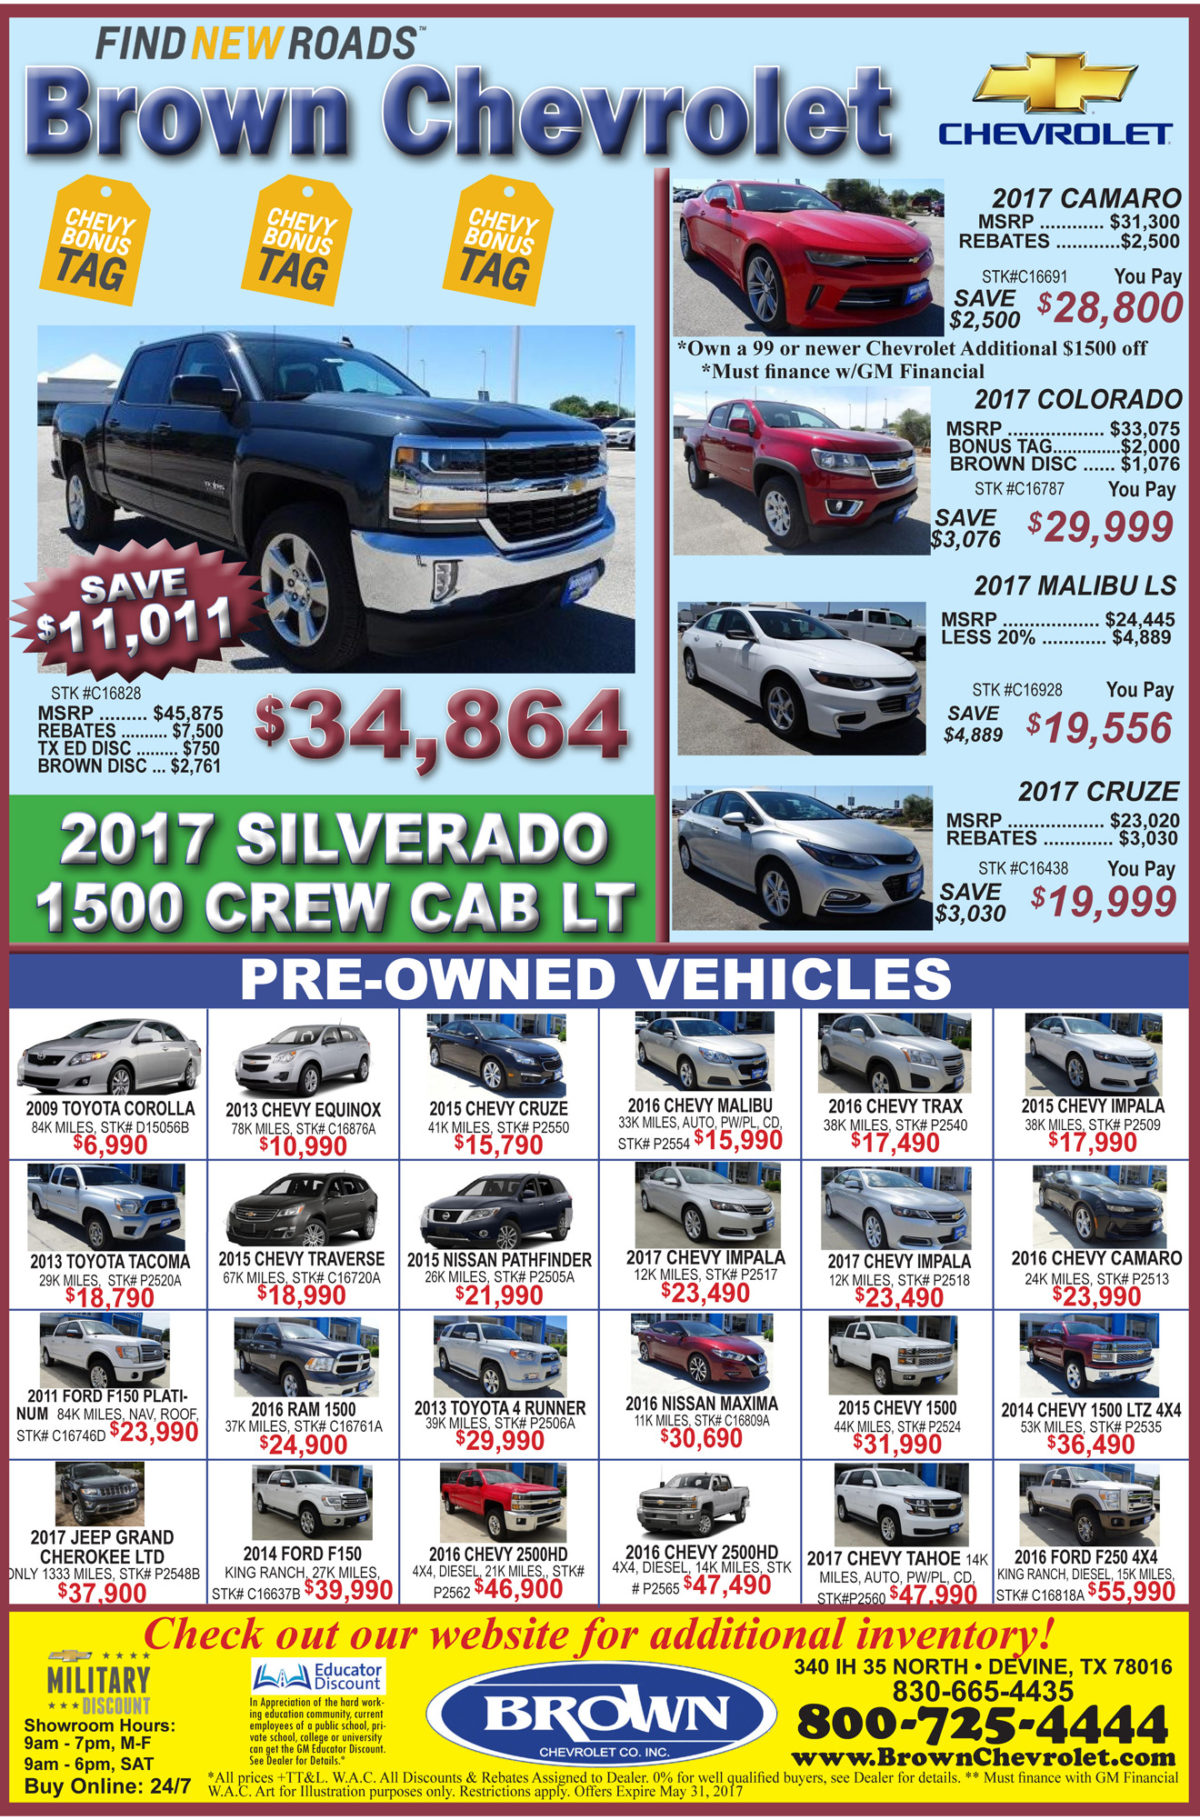 Brown Chevrolet deals for the week of 5-17-17